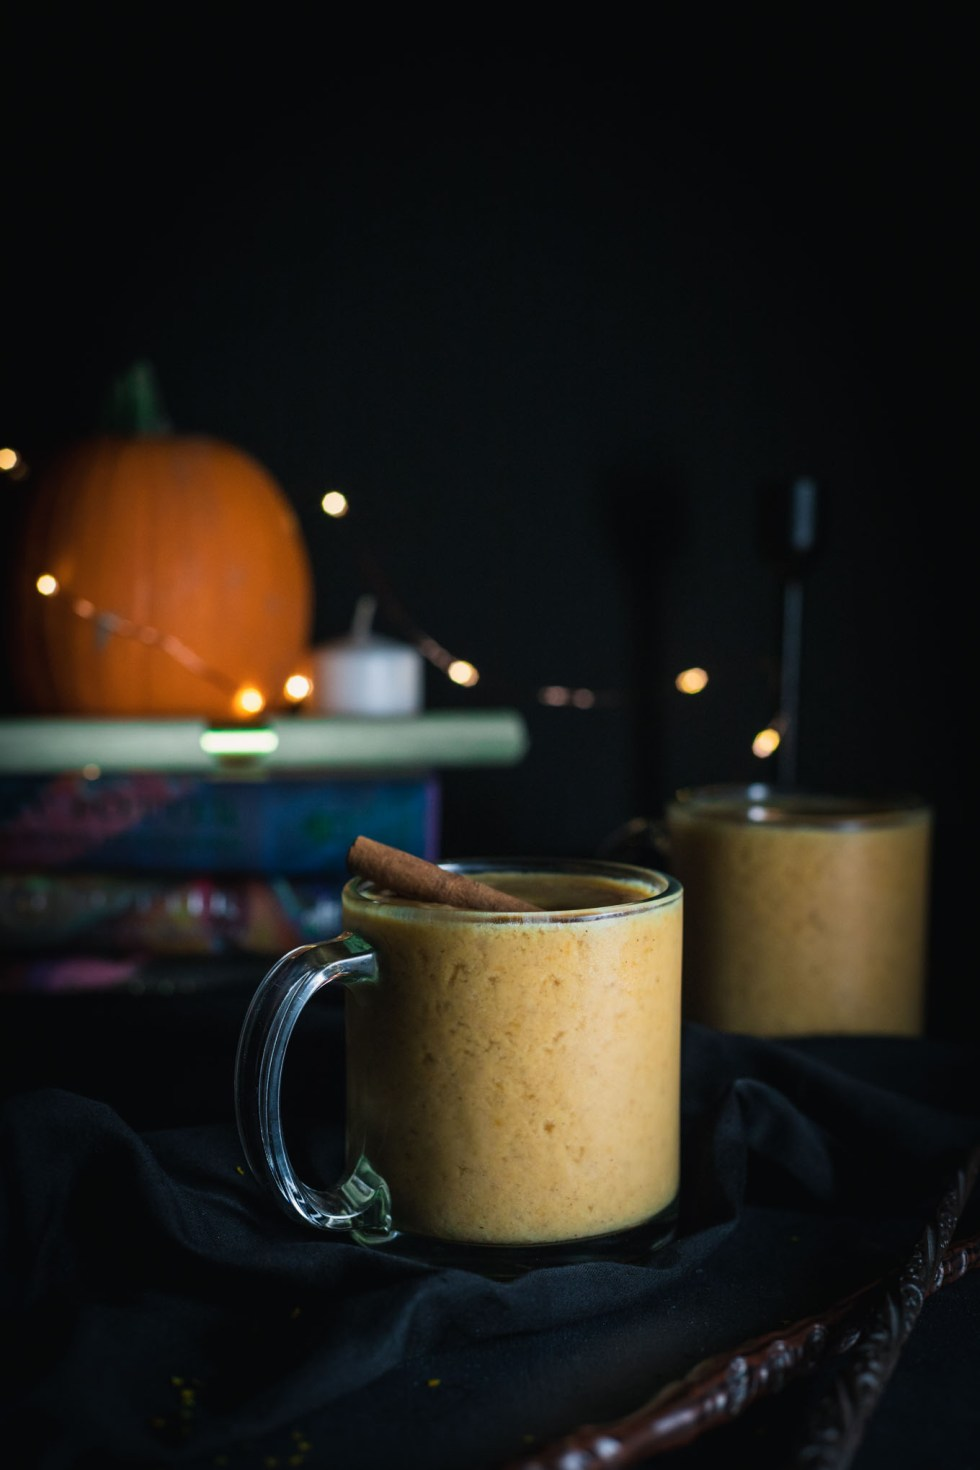 Two glass mugs filled with harry potter-inspired pumpkin juice with orange twinkly lights in the background